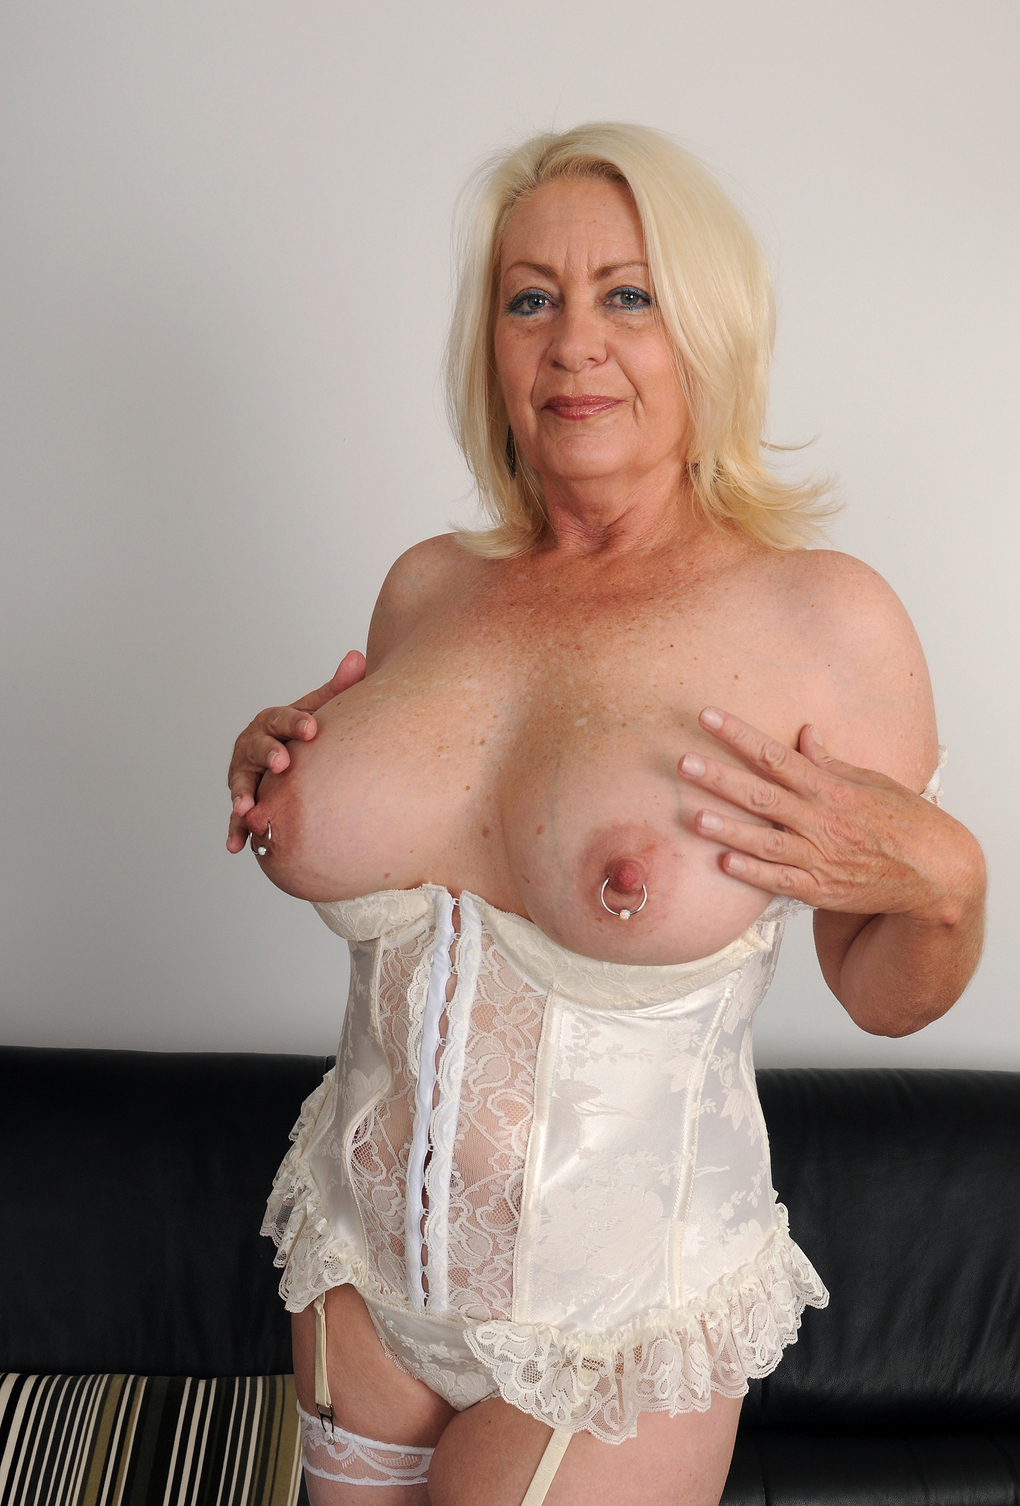 Granny Sex Pictures - Free older women galleries at